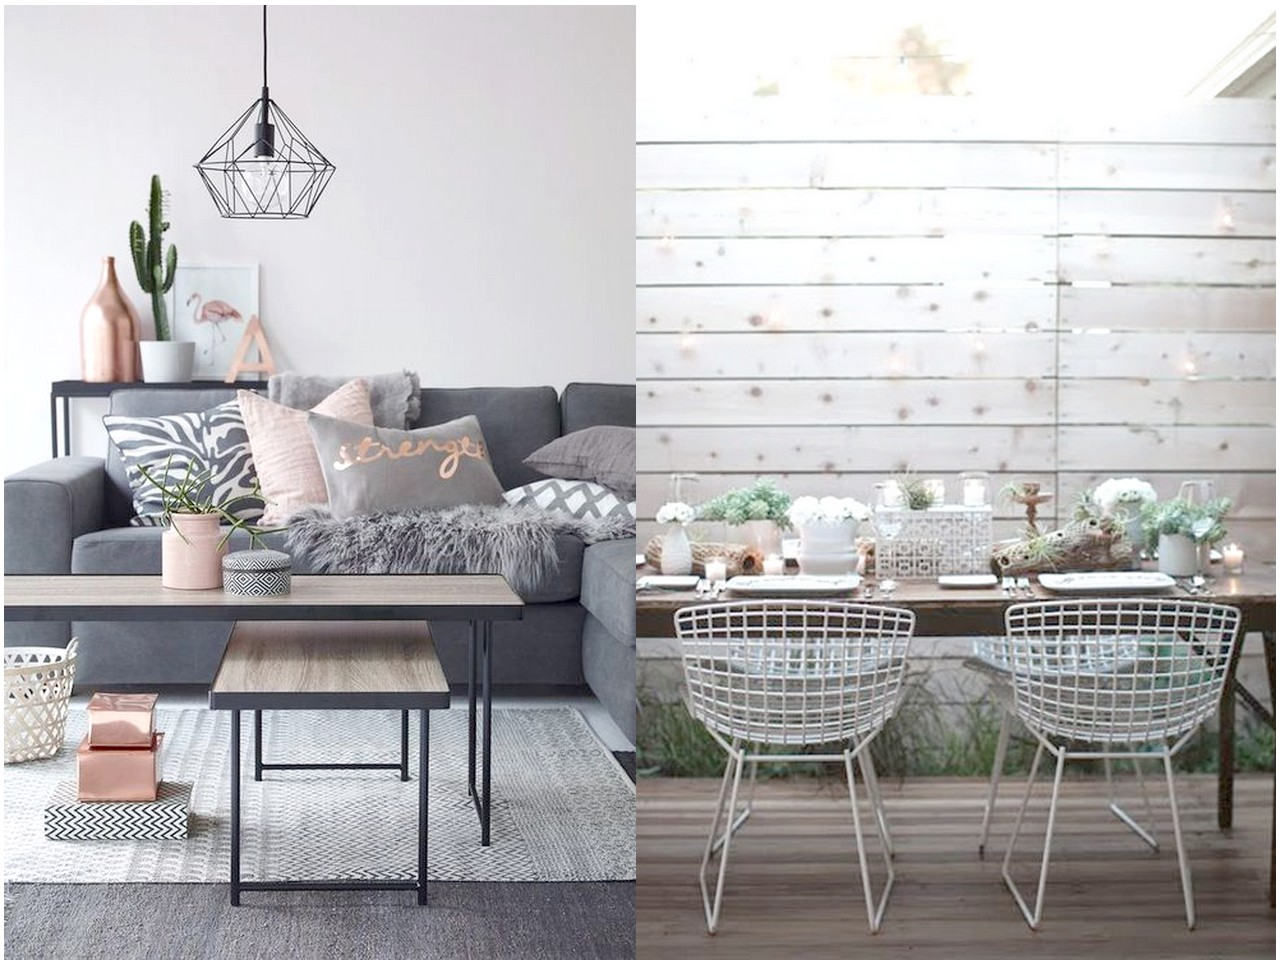 Tendencias 2016 2017 decorar con metal for Tendencias decoracion 2017